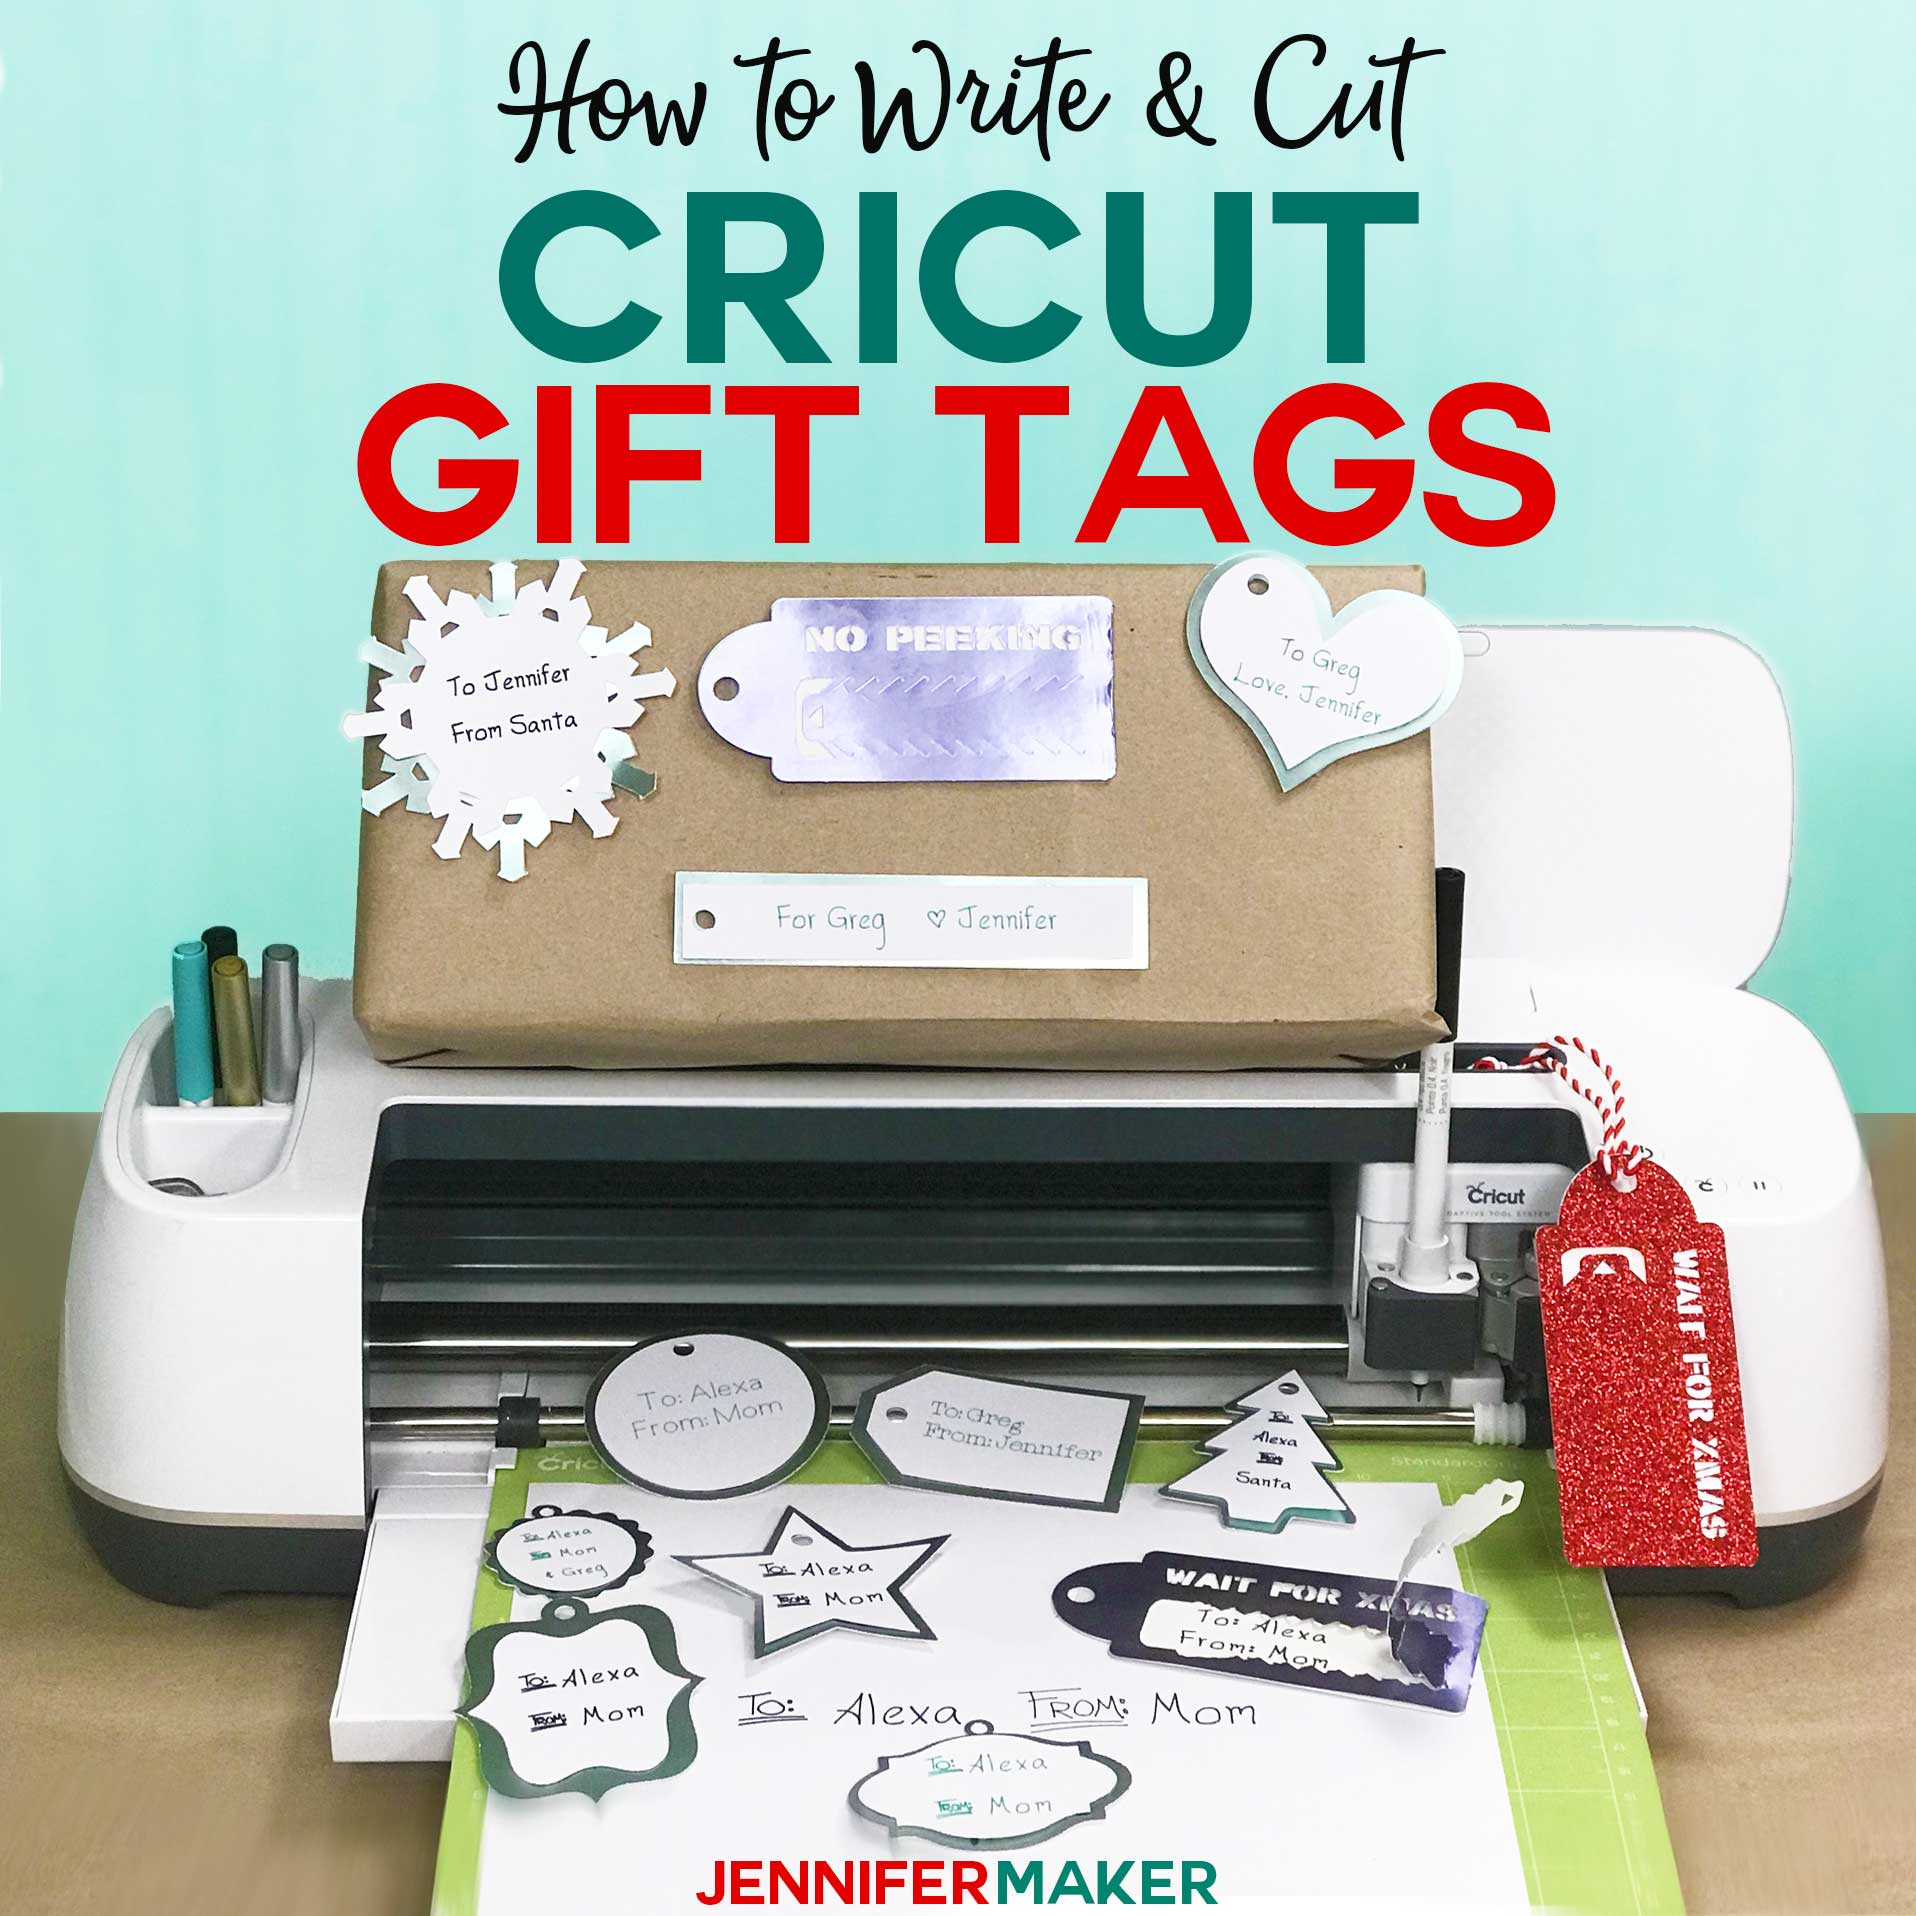 How to write & cut gift tags on a Cricut with free templates and a penwriting font! #cricut #gifts #svgcutfile #font #handwriting